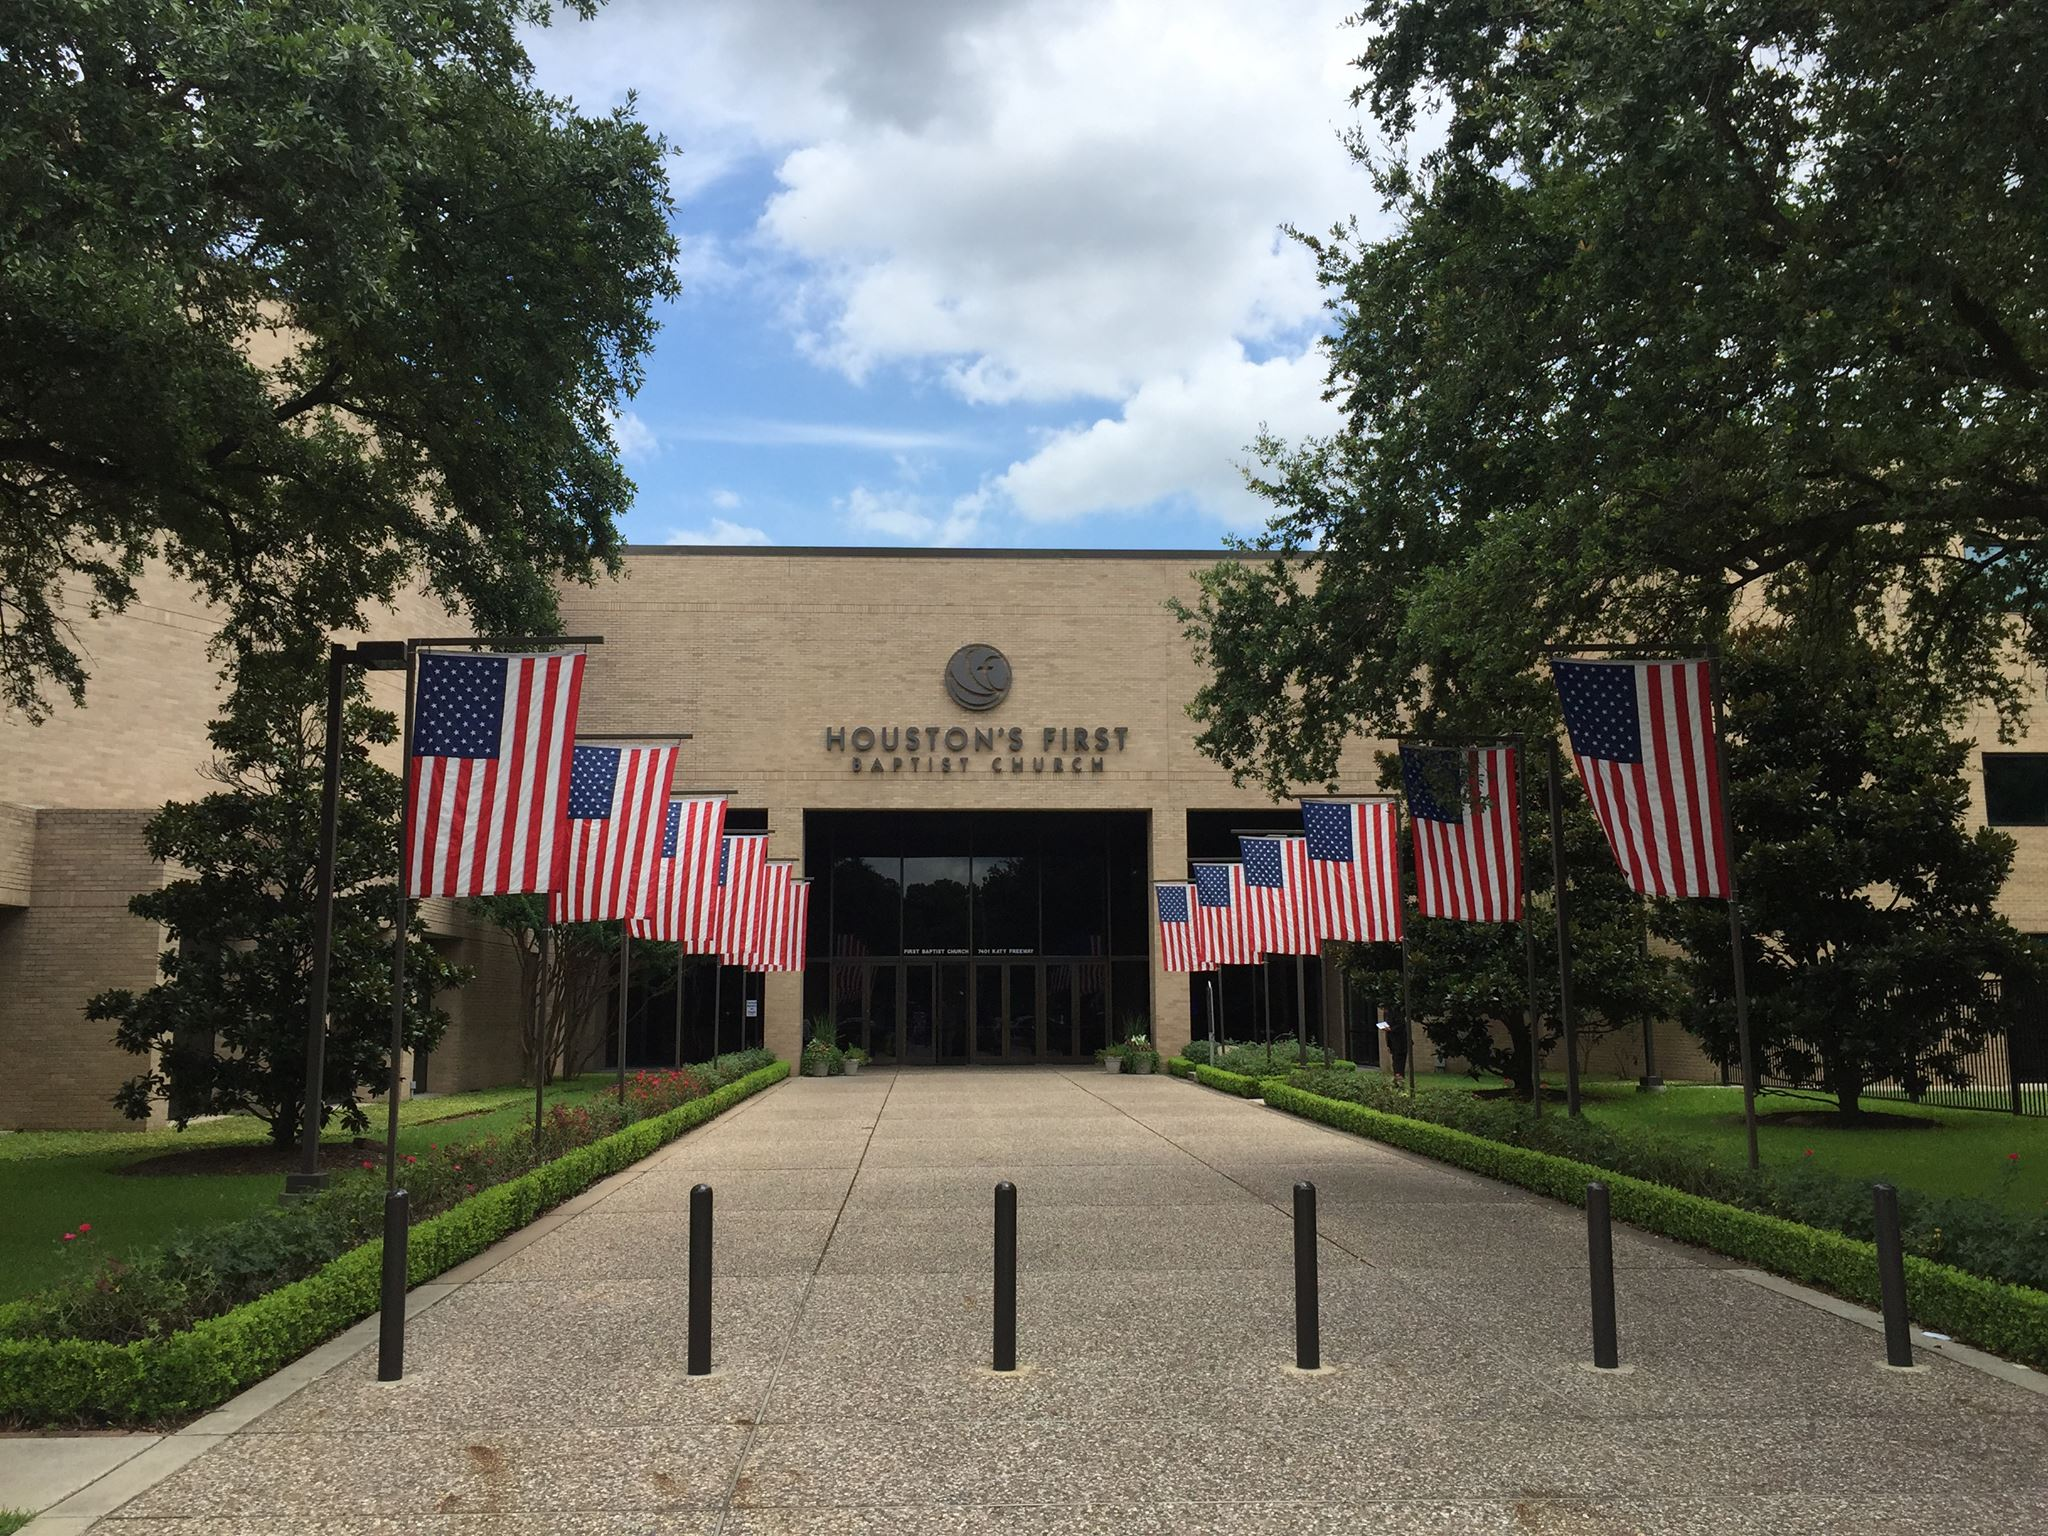 Houston S First Baptist To Acquire Space Downtown San